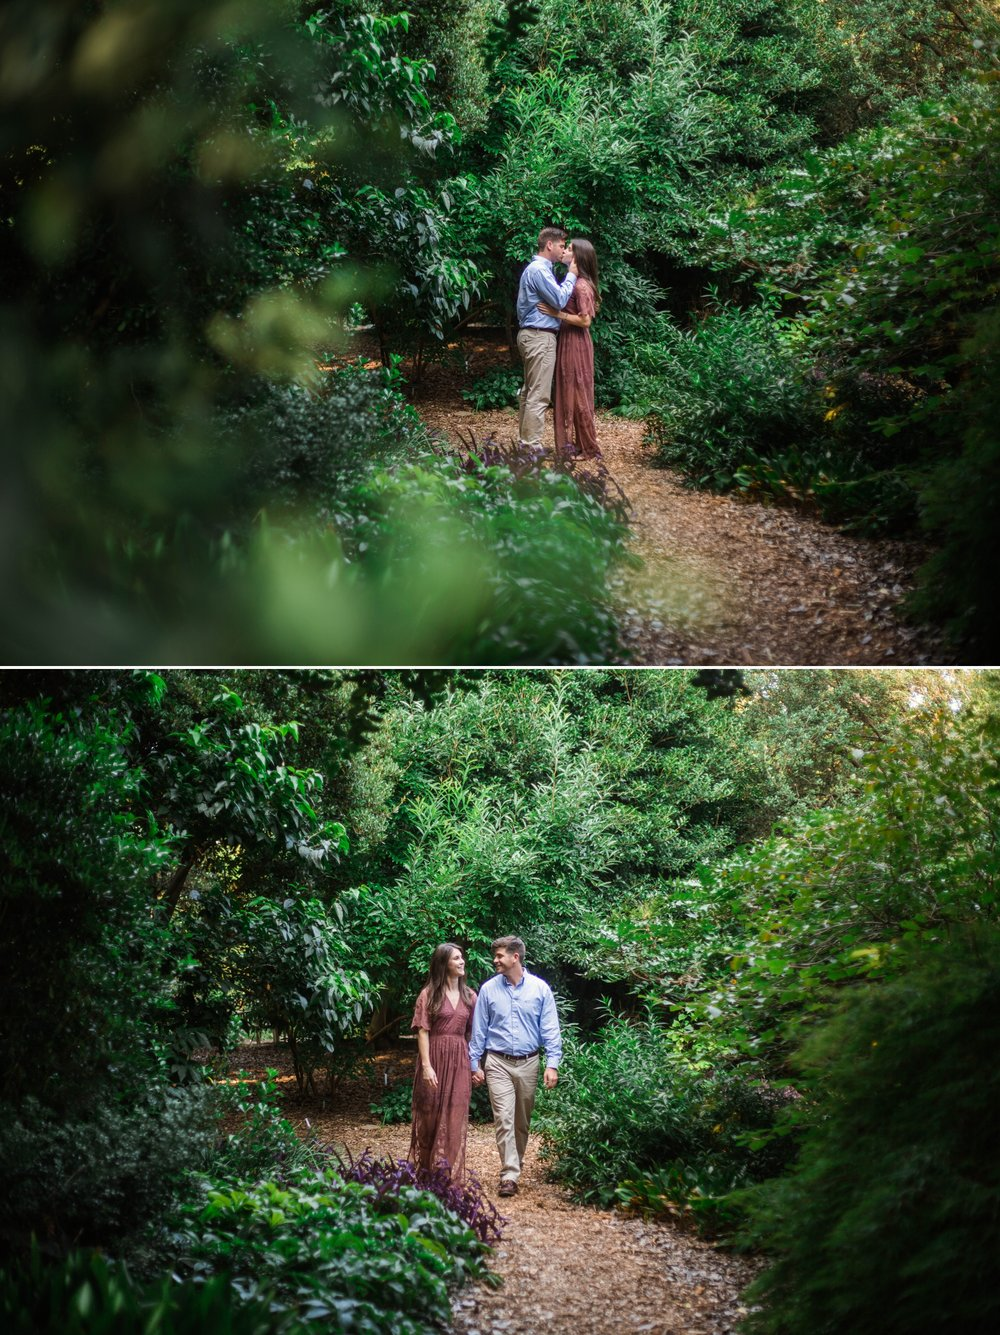 Enchanted Forest Engagement - Aryn + Tyler -  Photography Session at the JC Raulston Arboretum - Raleigh Wedding Photographer